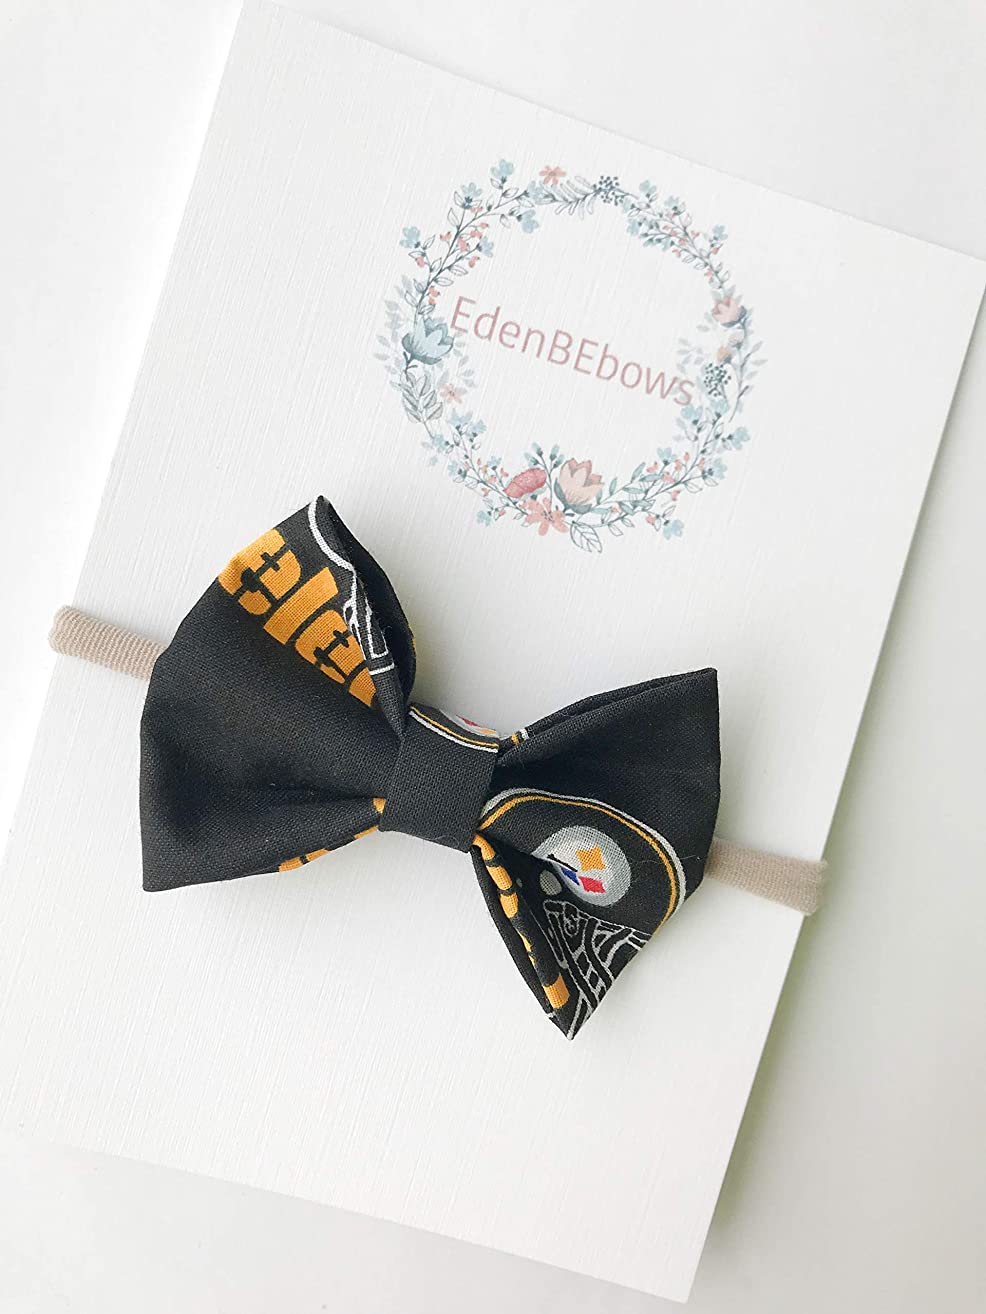 Pittsburg steelers headband bow - great for baby shower, newborn, toddler girls - extra soft nylon headbands